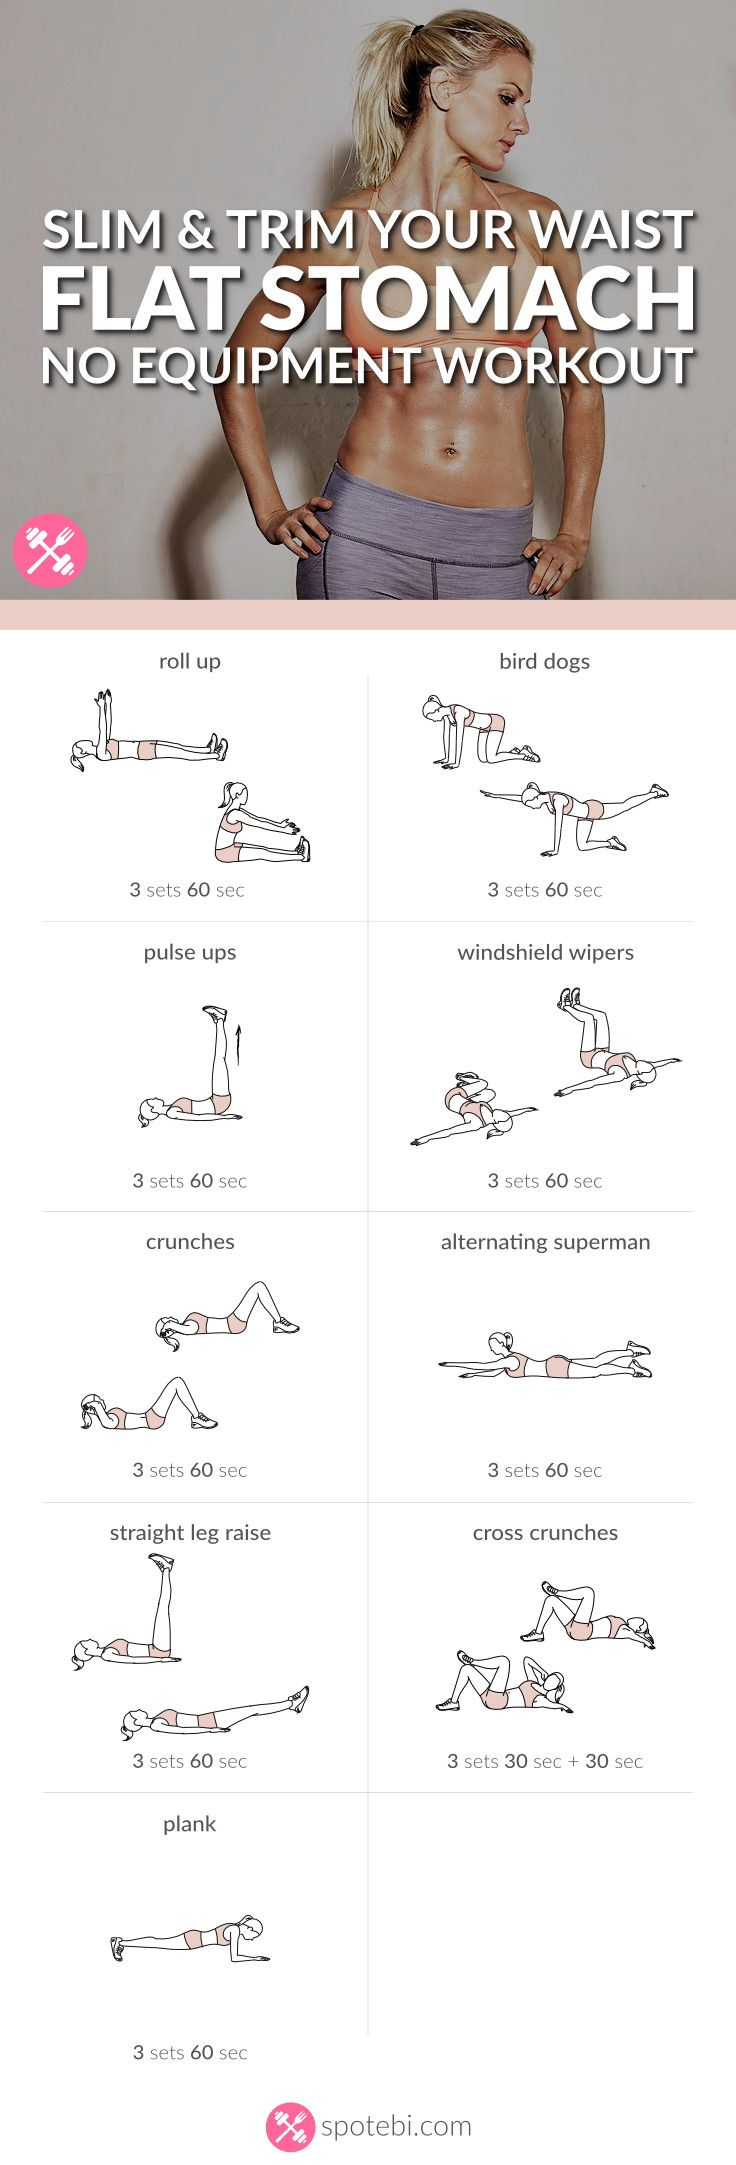 city purse Want to easily whip your tummy into shape  Try this at home flat stomach workout routine for women to get a slim  toned and trim belly  and sculpt your abs in n